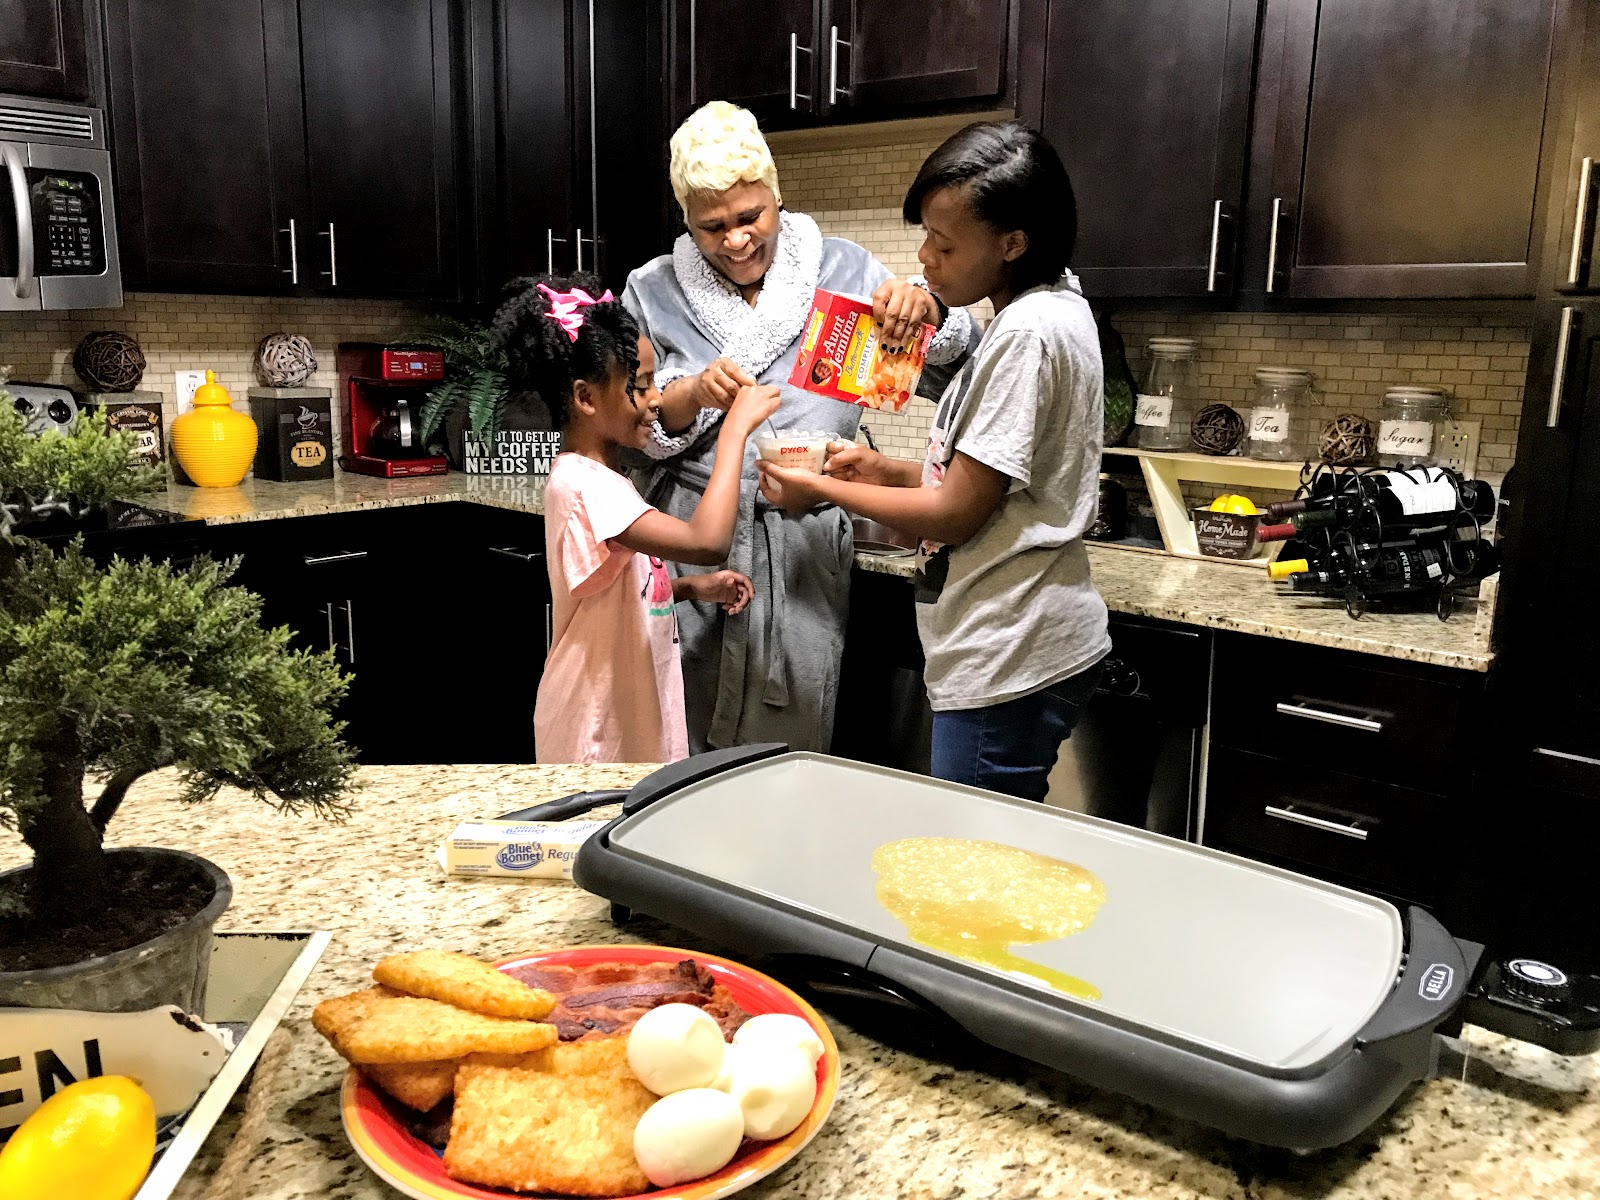 Image: Tangie Bell and daughters cooking pancakes in the kitchen before the first day of school. Seen first on Bits and Babbles blog